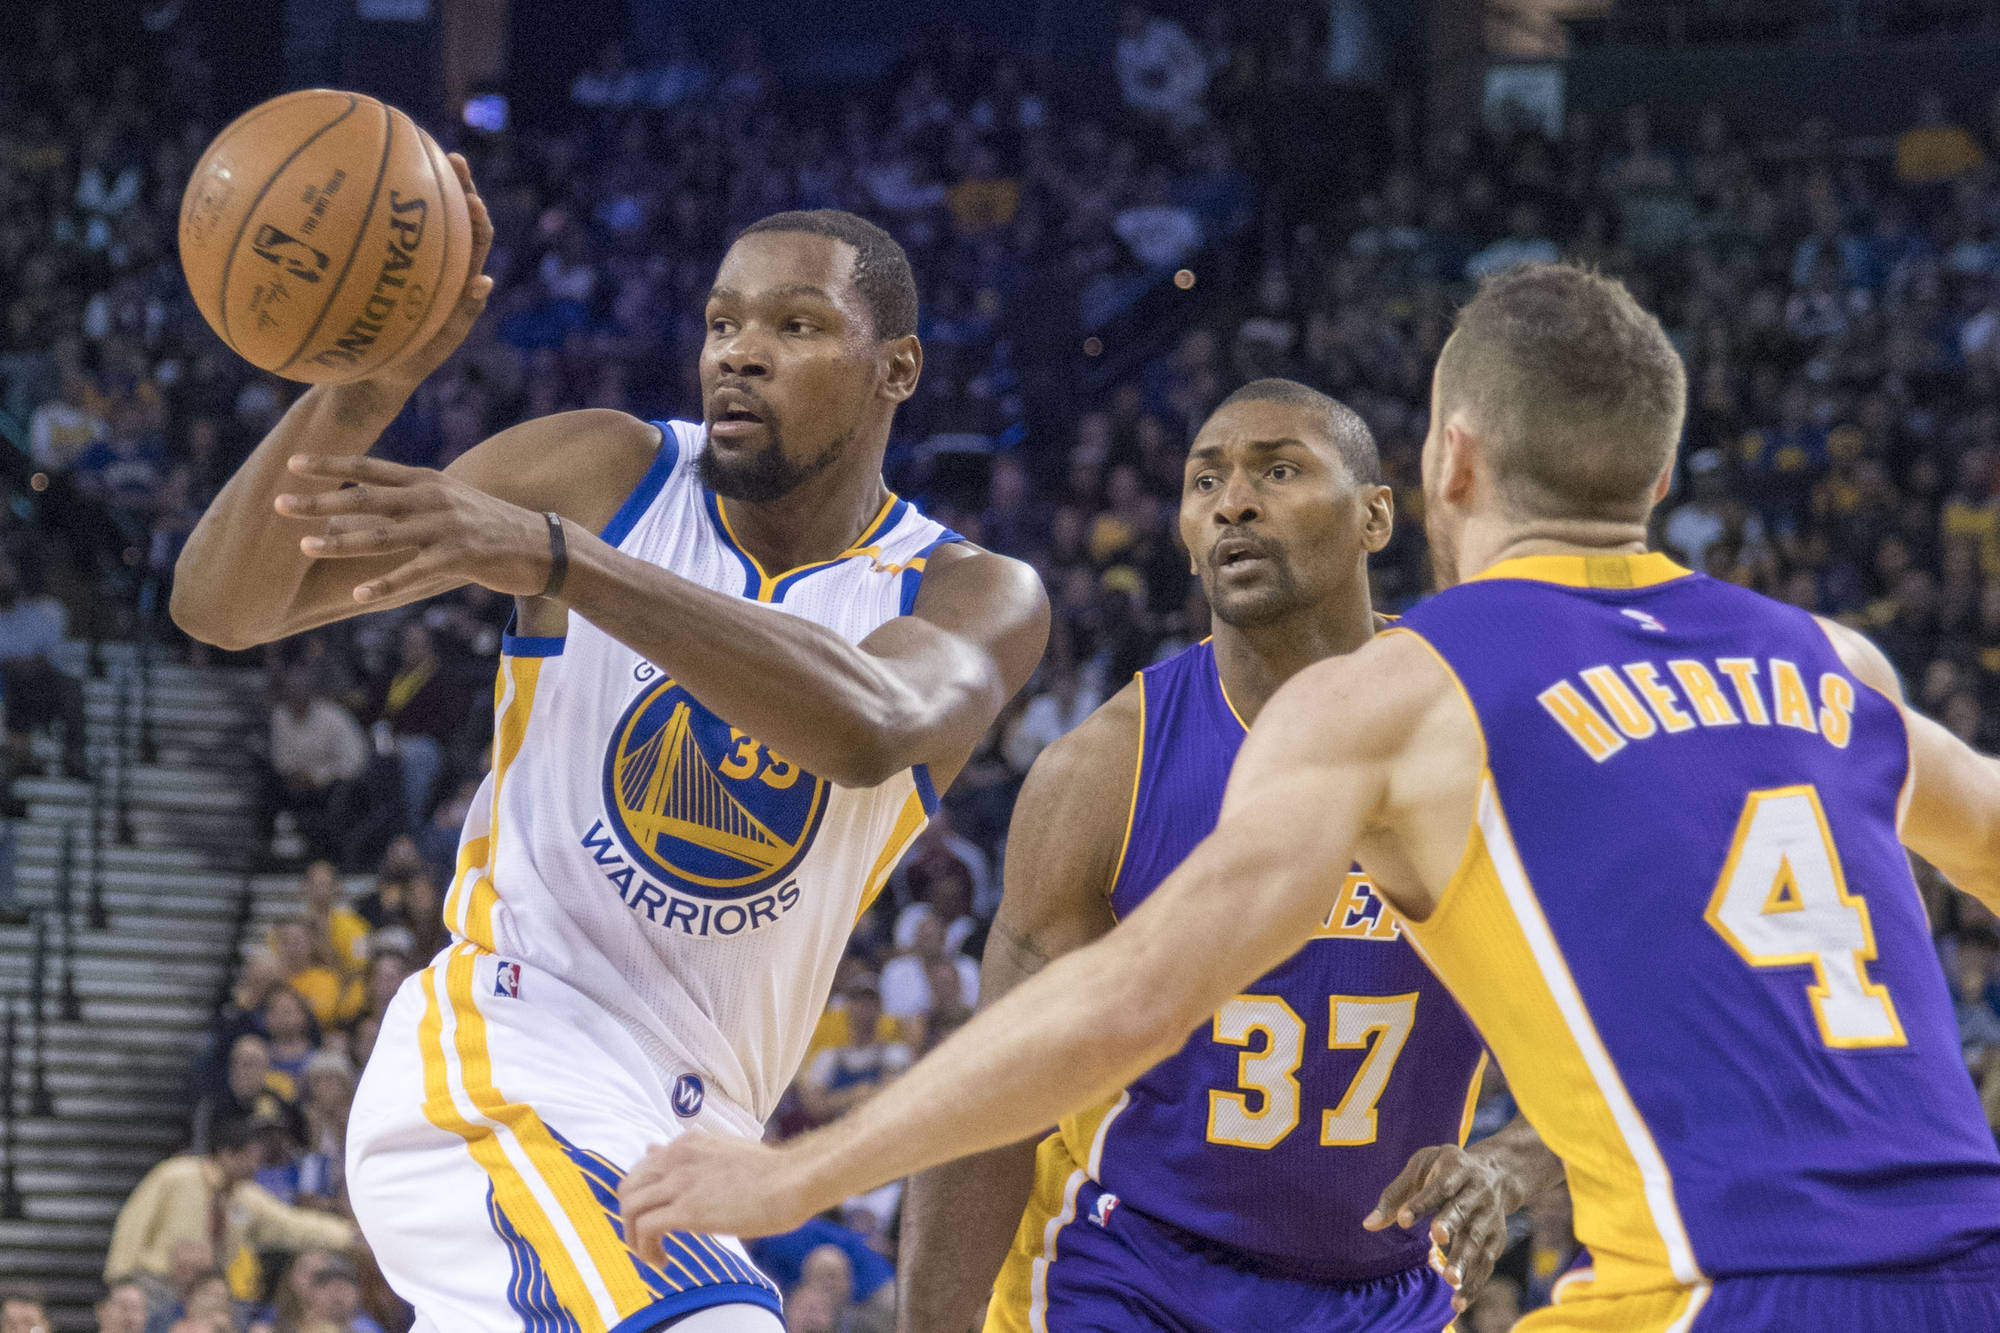 NBA: Are the Warriors the greatest offensive team of all time?